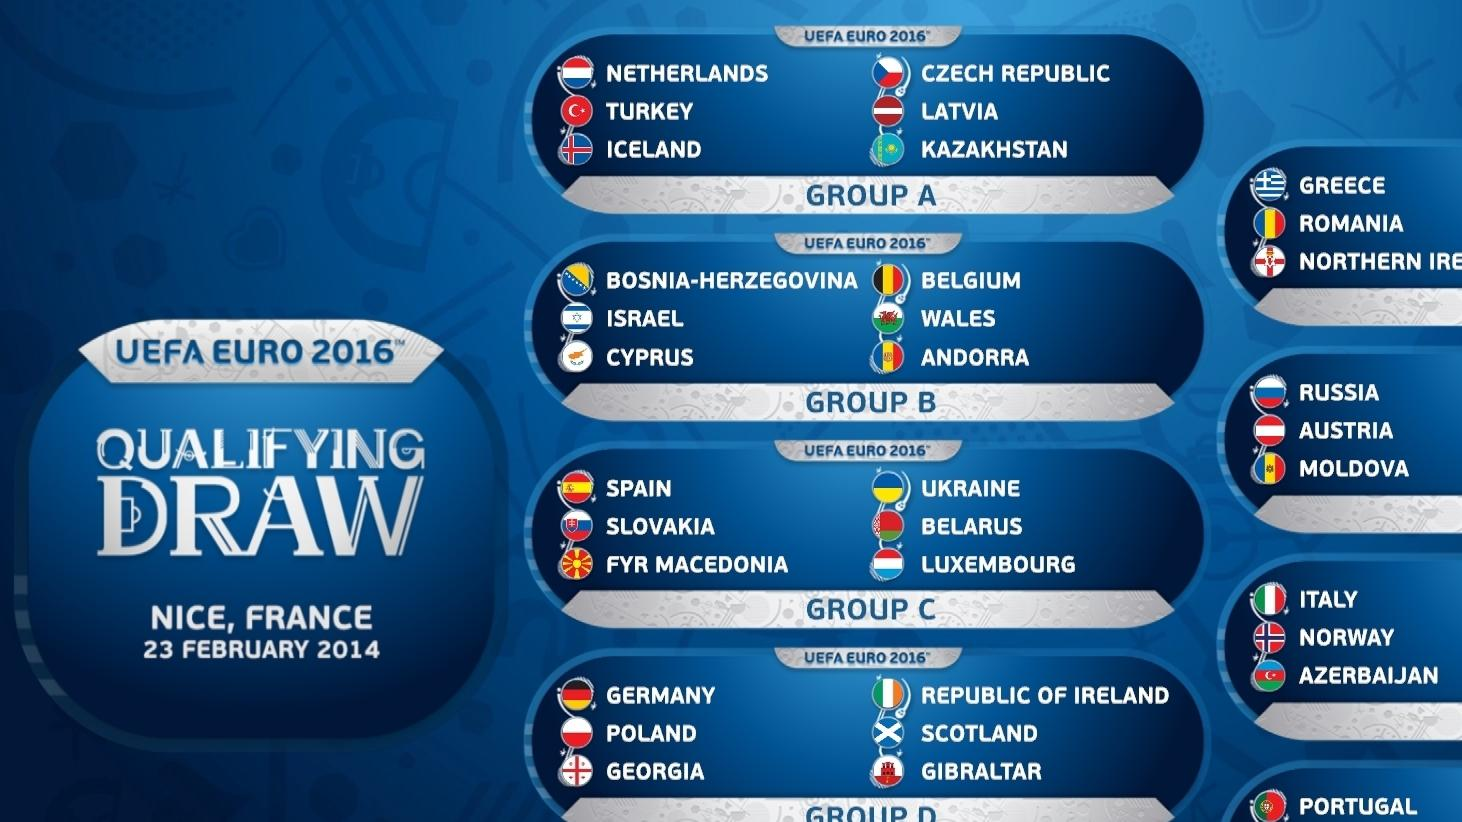 Qualifying draw paves road to France 2016   UEFA EURO 2020 ...